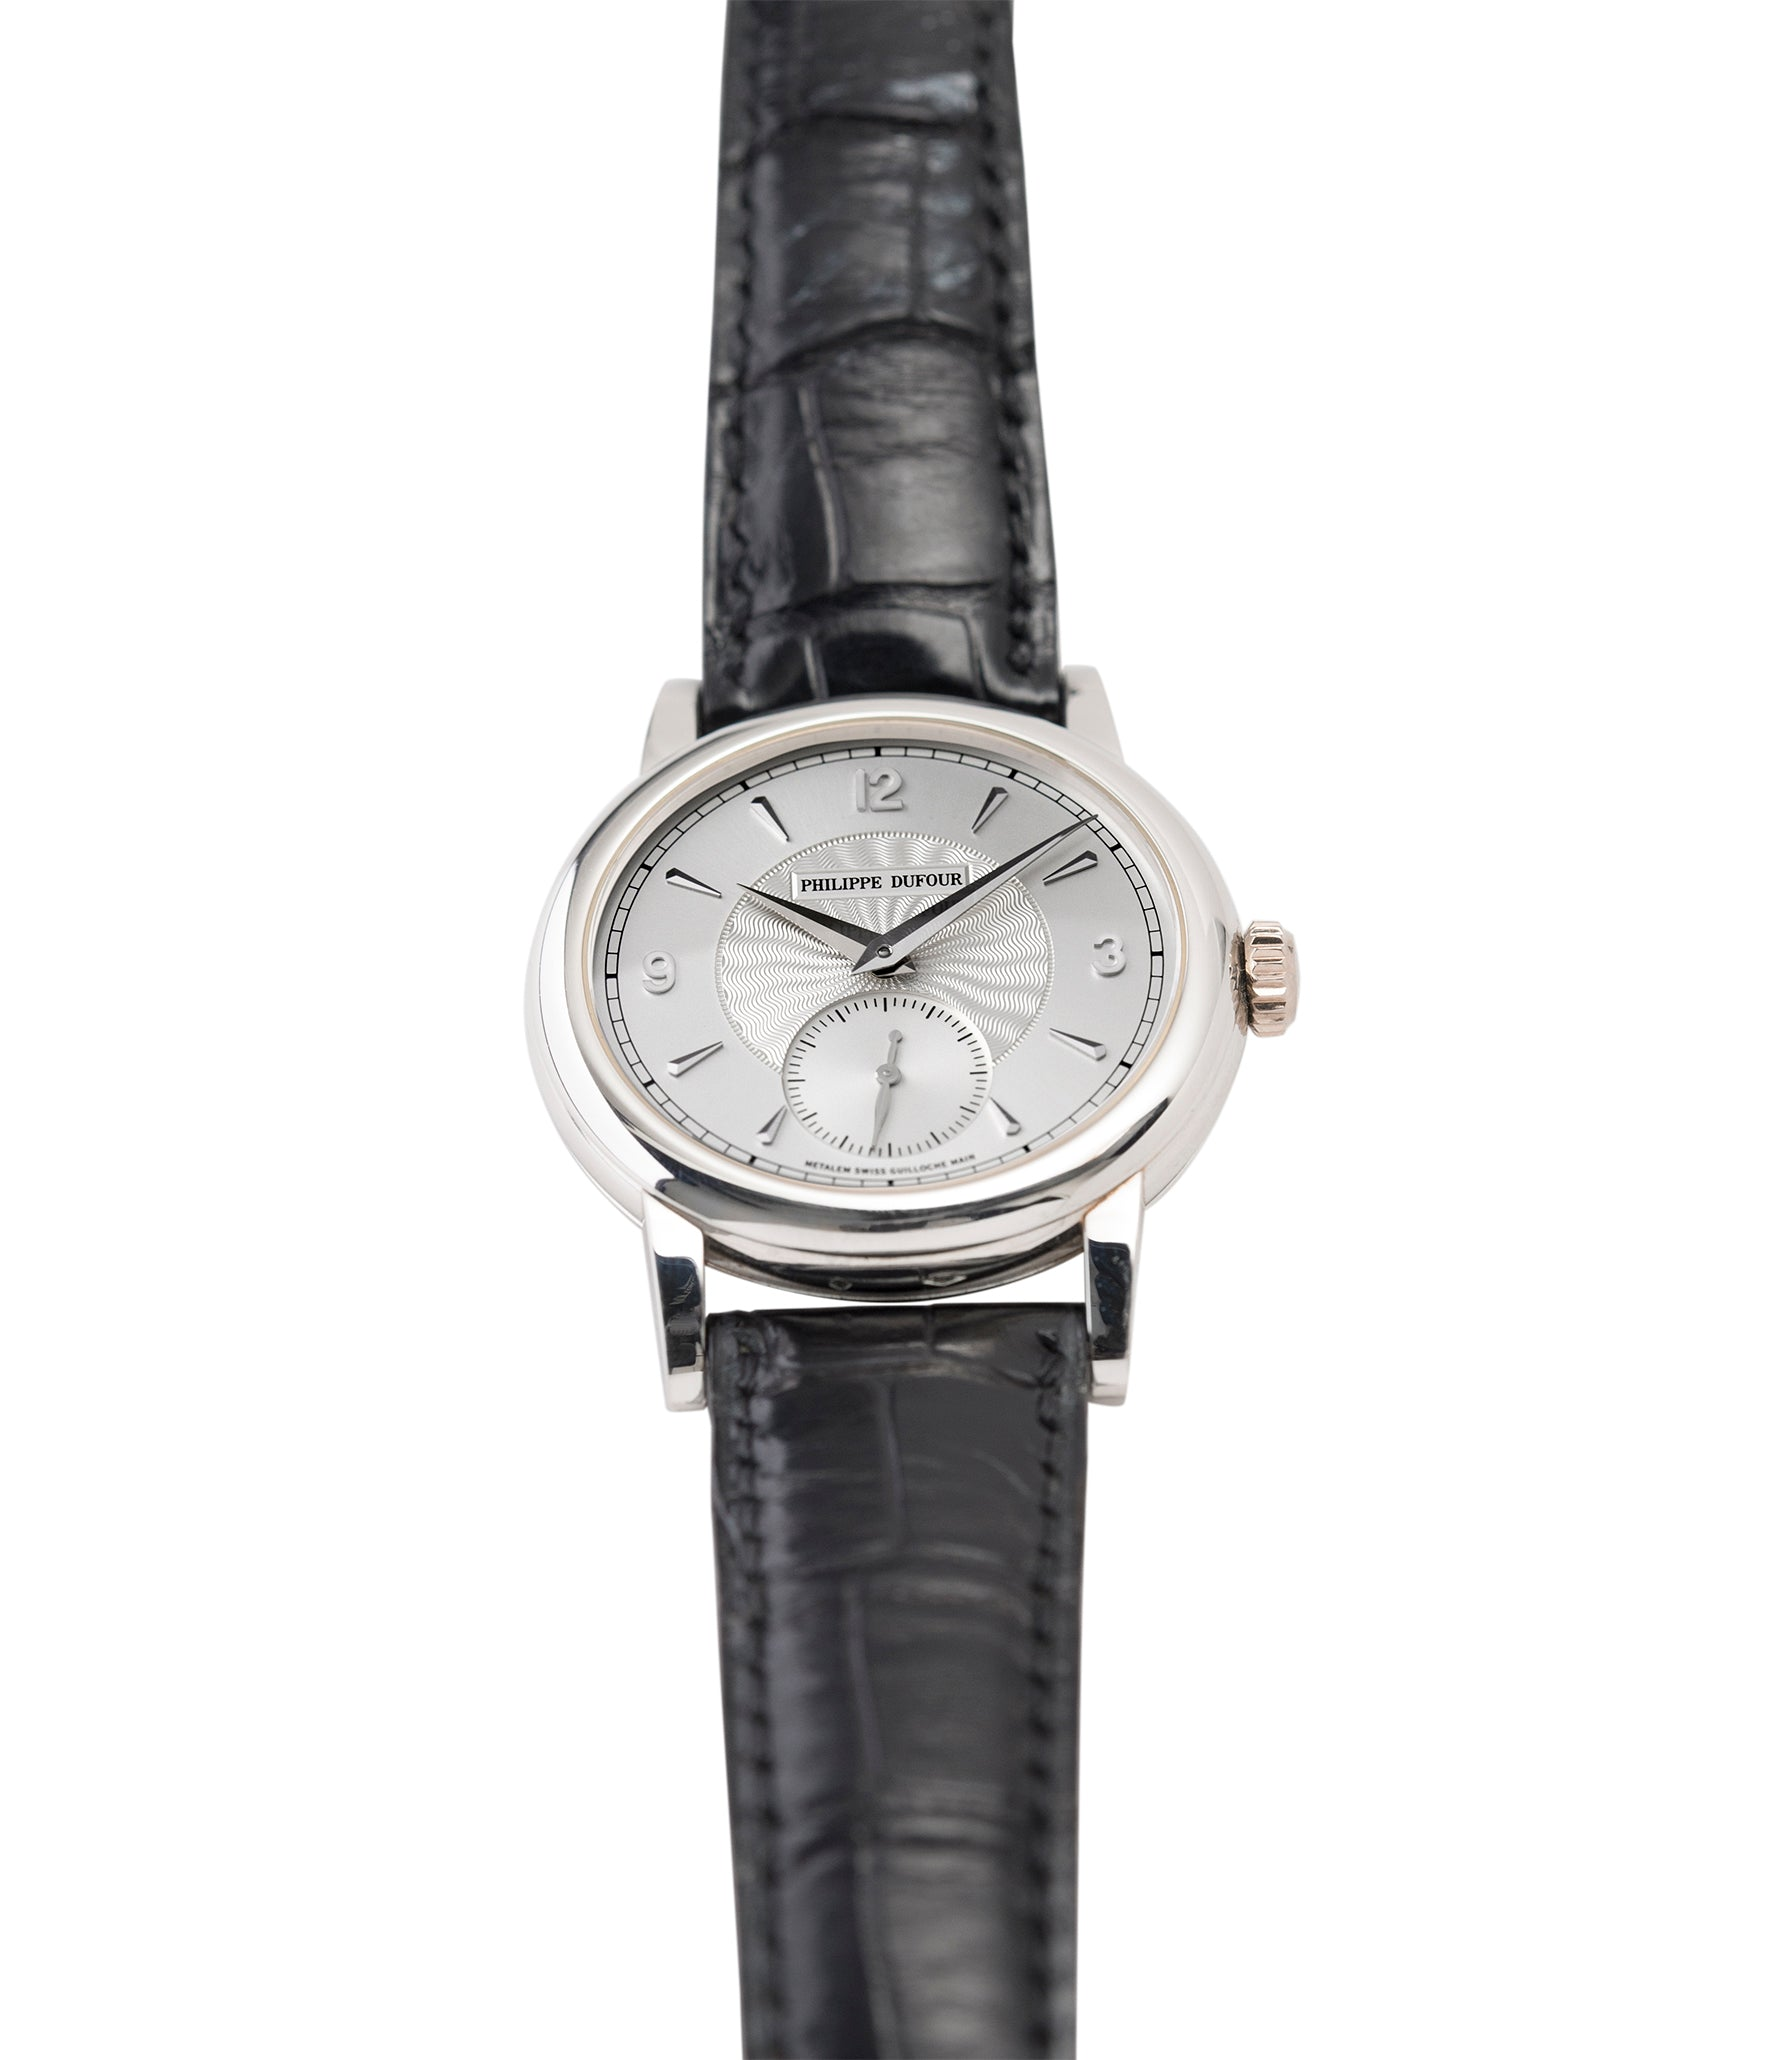 selling Simplicity watch by Philippe Dufour platinum time-only dress watch for sale online at A Collected Man London UK approved specialist of preowned independent watchmakers